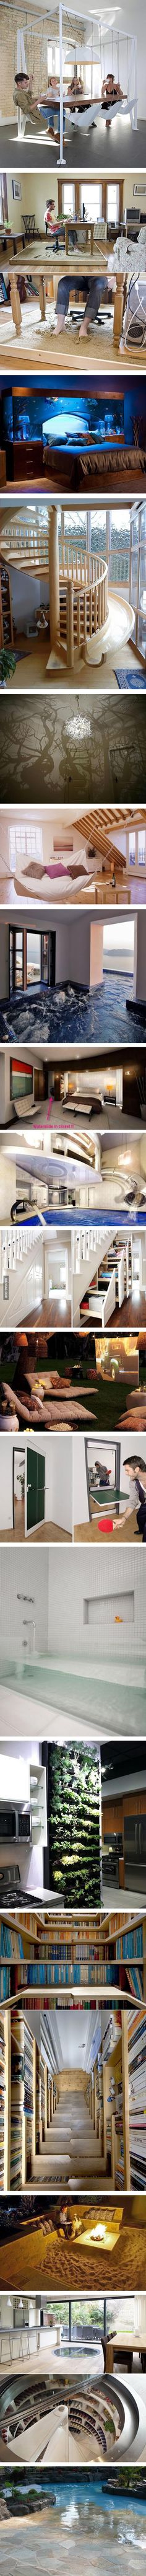 Crazy ideas. Some of these are pretty wonderful